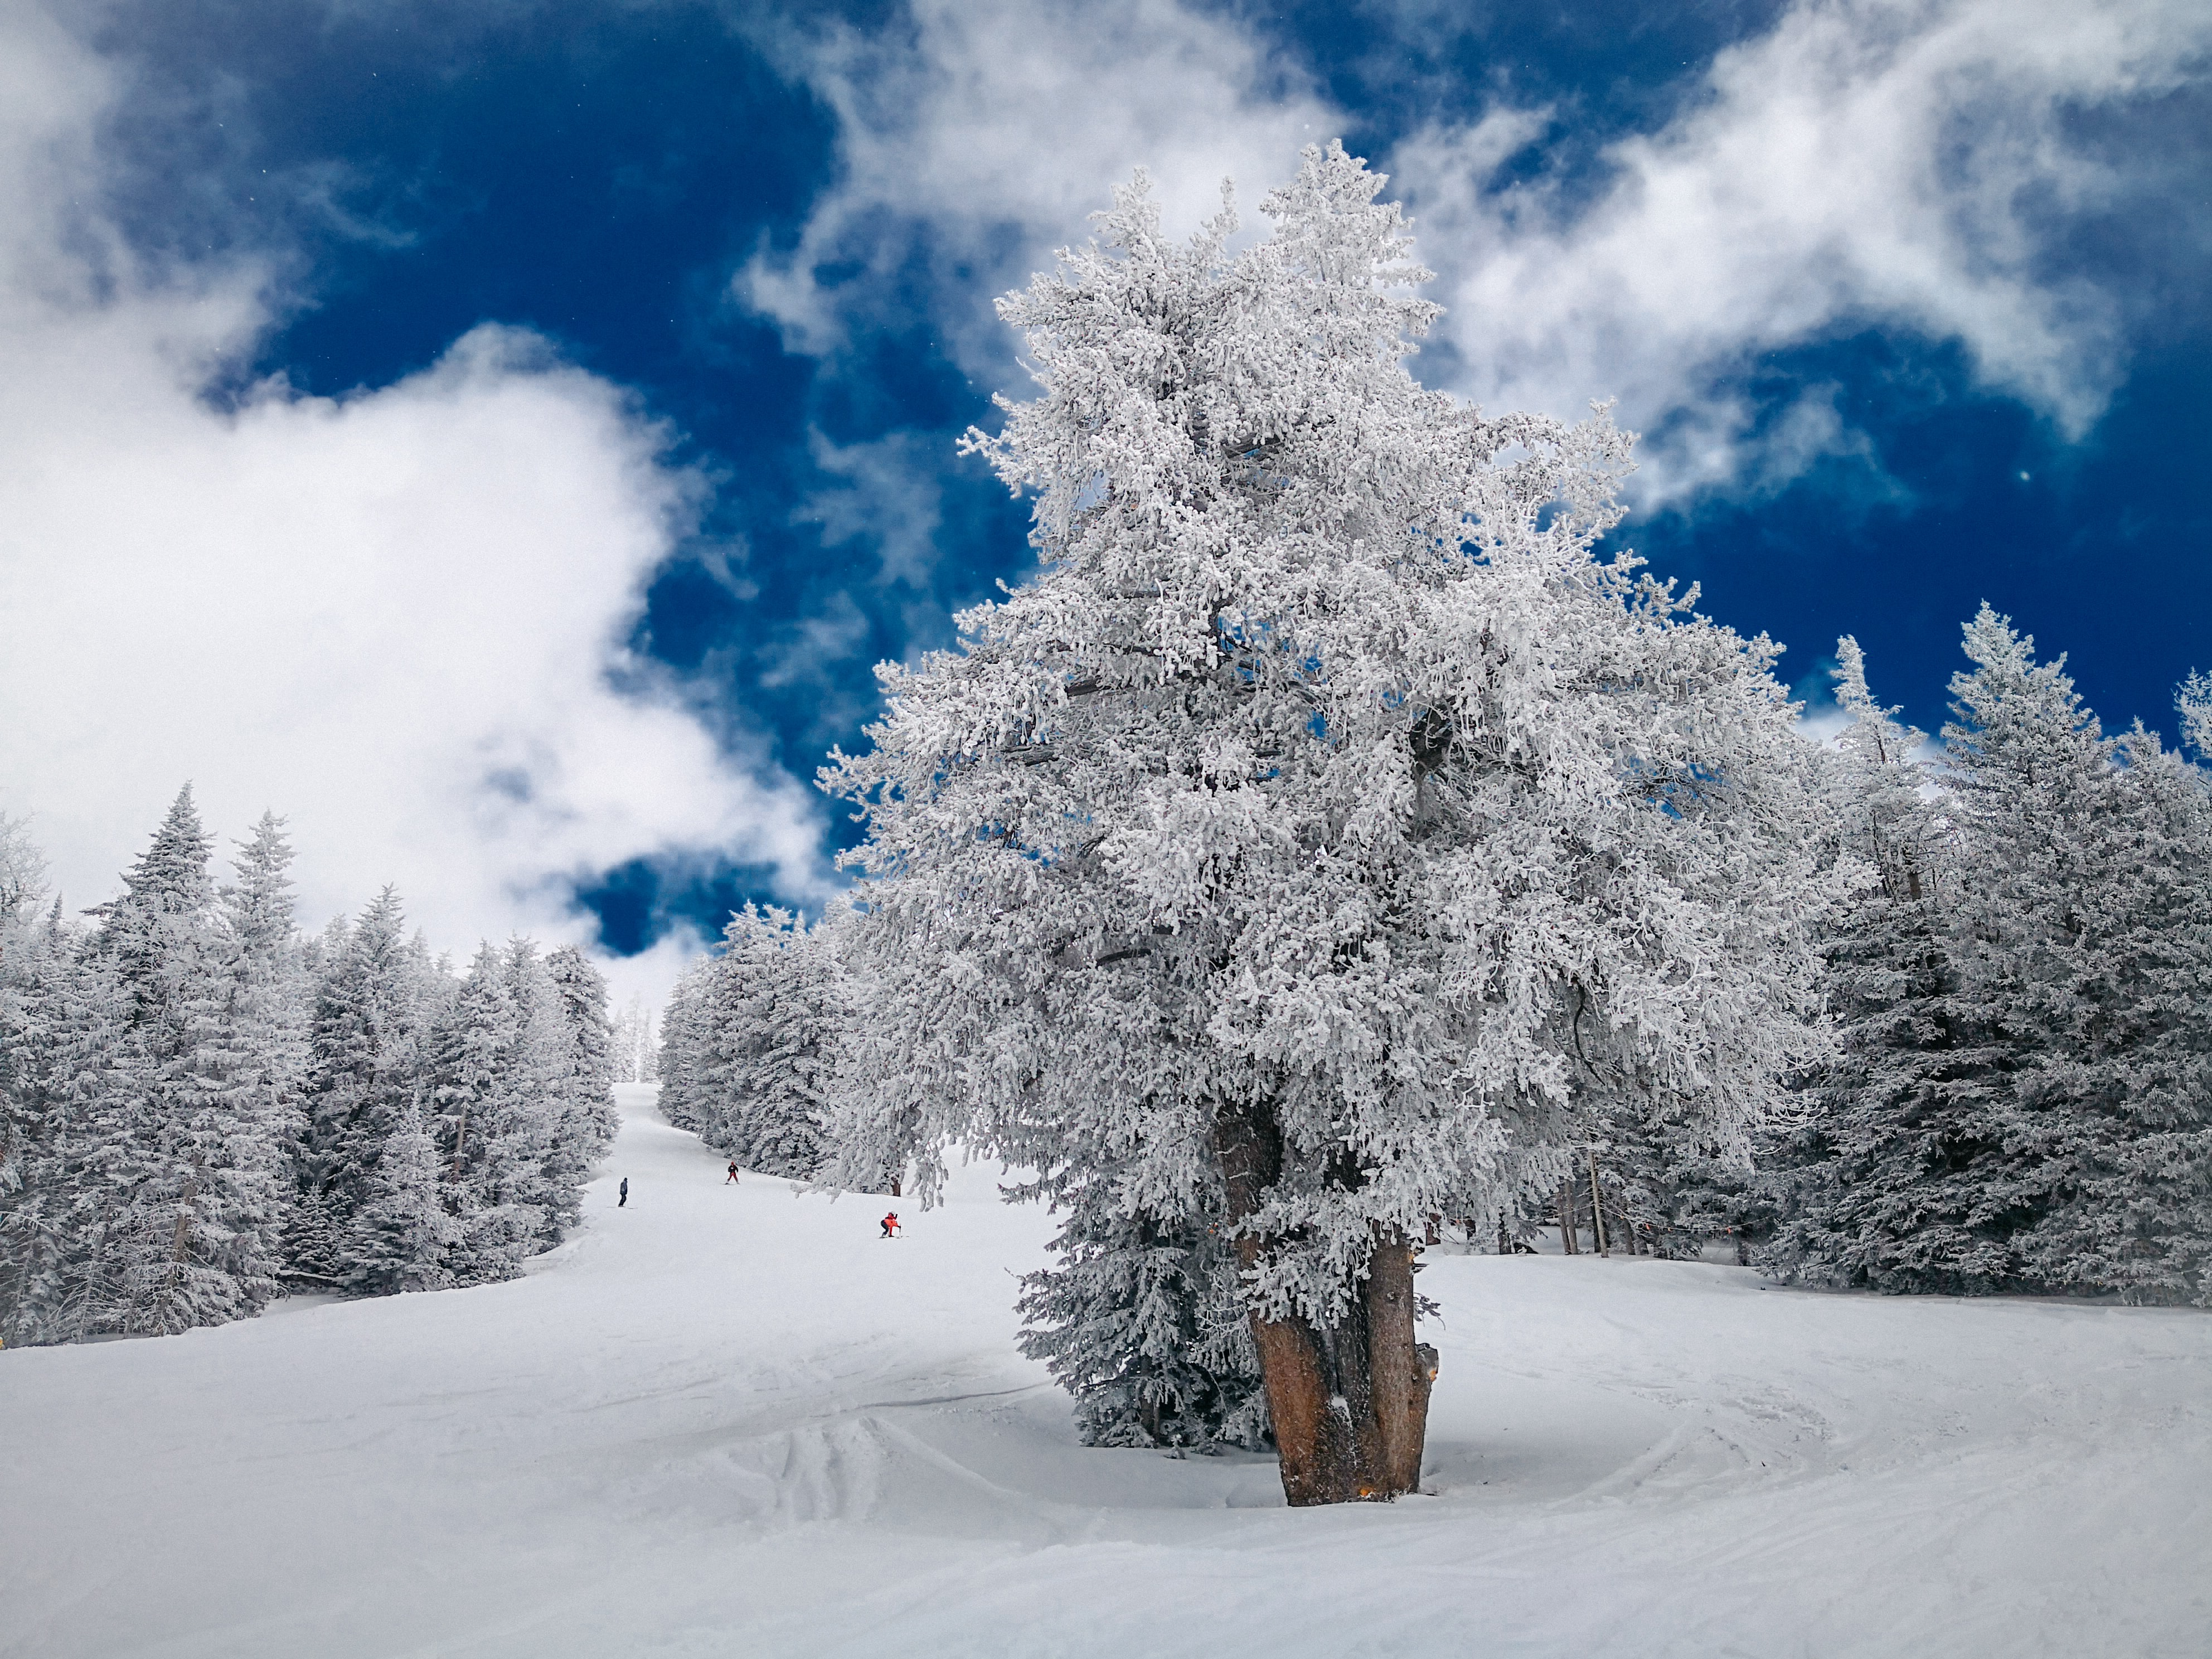 photography of snow plain with trees and clouds